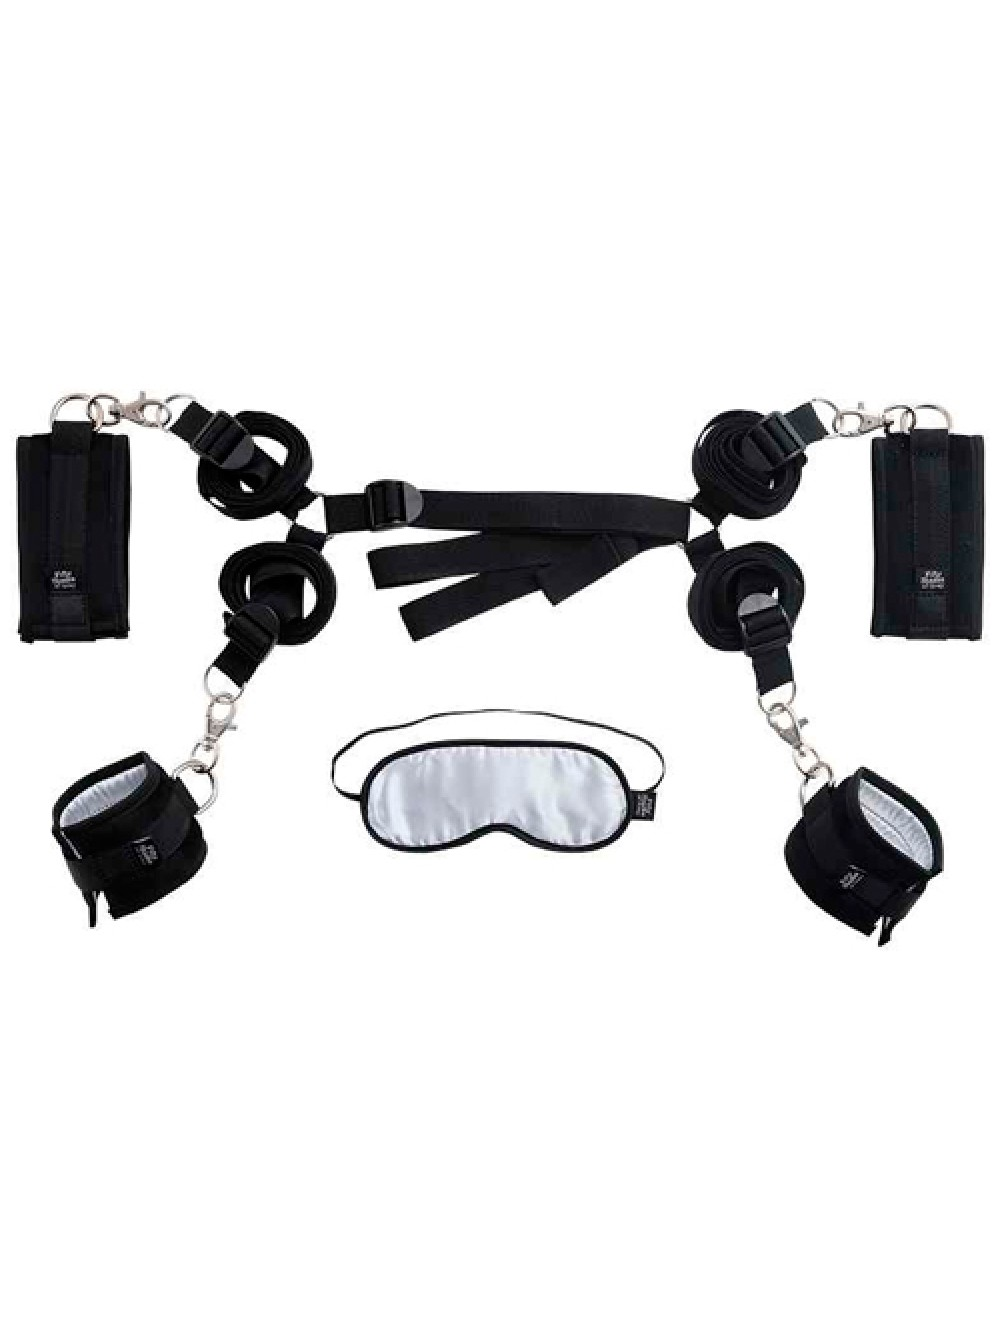 Hard Limits - Under The Bed Restraints Kit 5060108819411